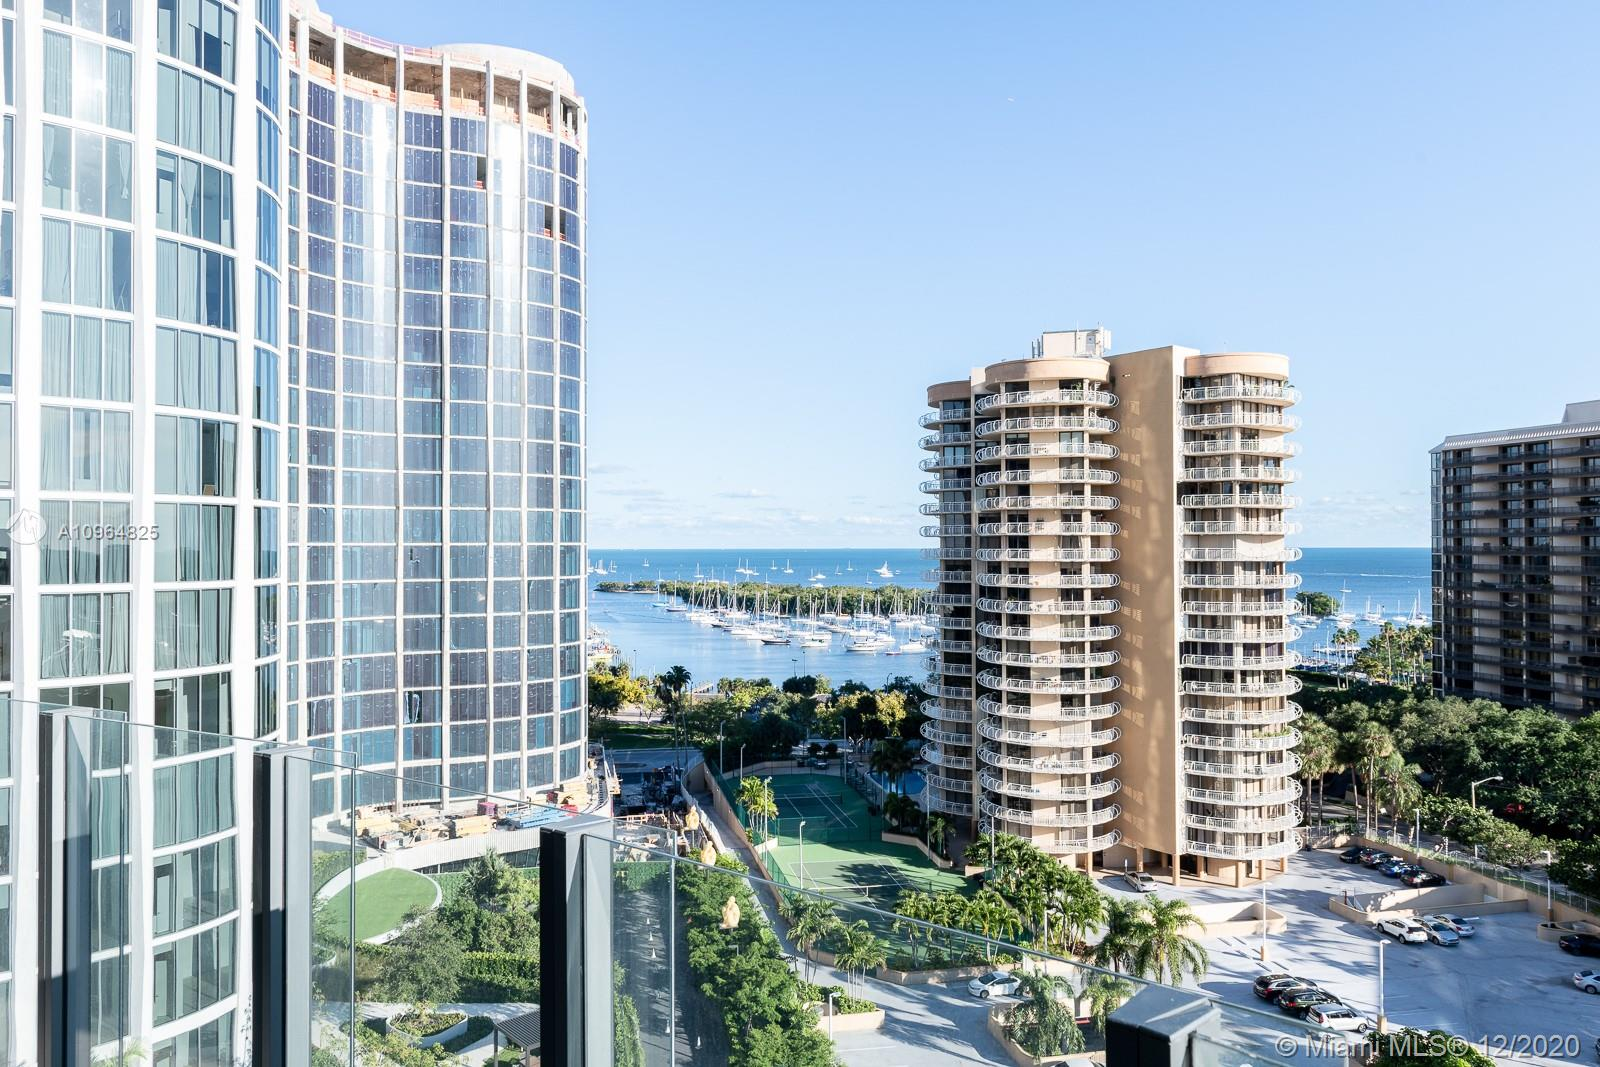 Beautiful corner unit with spacious floor plan with great view of Biscayne Bay and Coconut Grove marina.  Master Bedroom with great master bath, 2 bedrooms with jack and jill bathroom and 1 guest bath. High end appliances Sub-Zero and Wolf with marble countertops. Great amenities, Fitness Center, roof top pool, children's play area, movie theater, 24-hour concierge, sauna and steam rooms. Great location in Coconut Grove a block away from Cocowalk Shopping mall, restaurants, parks, schools and marina.